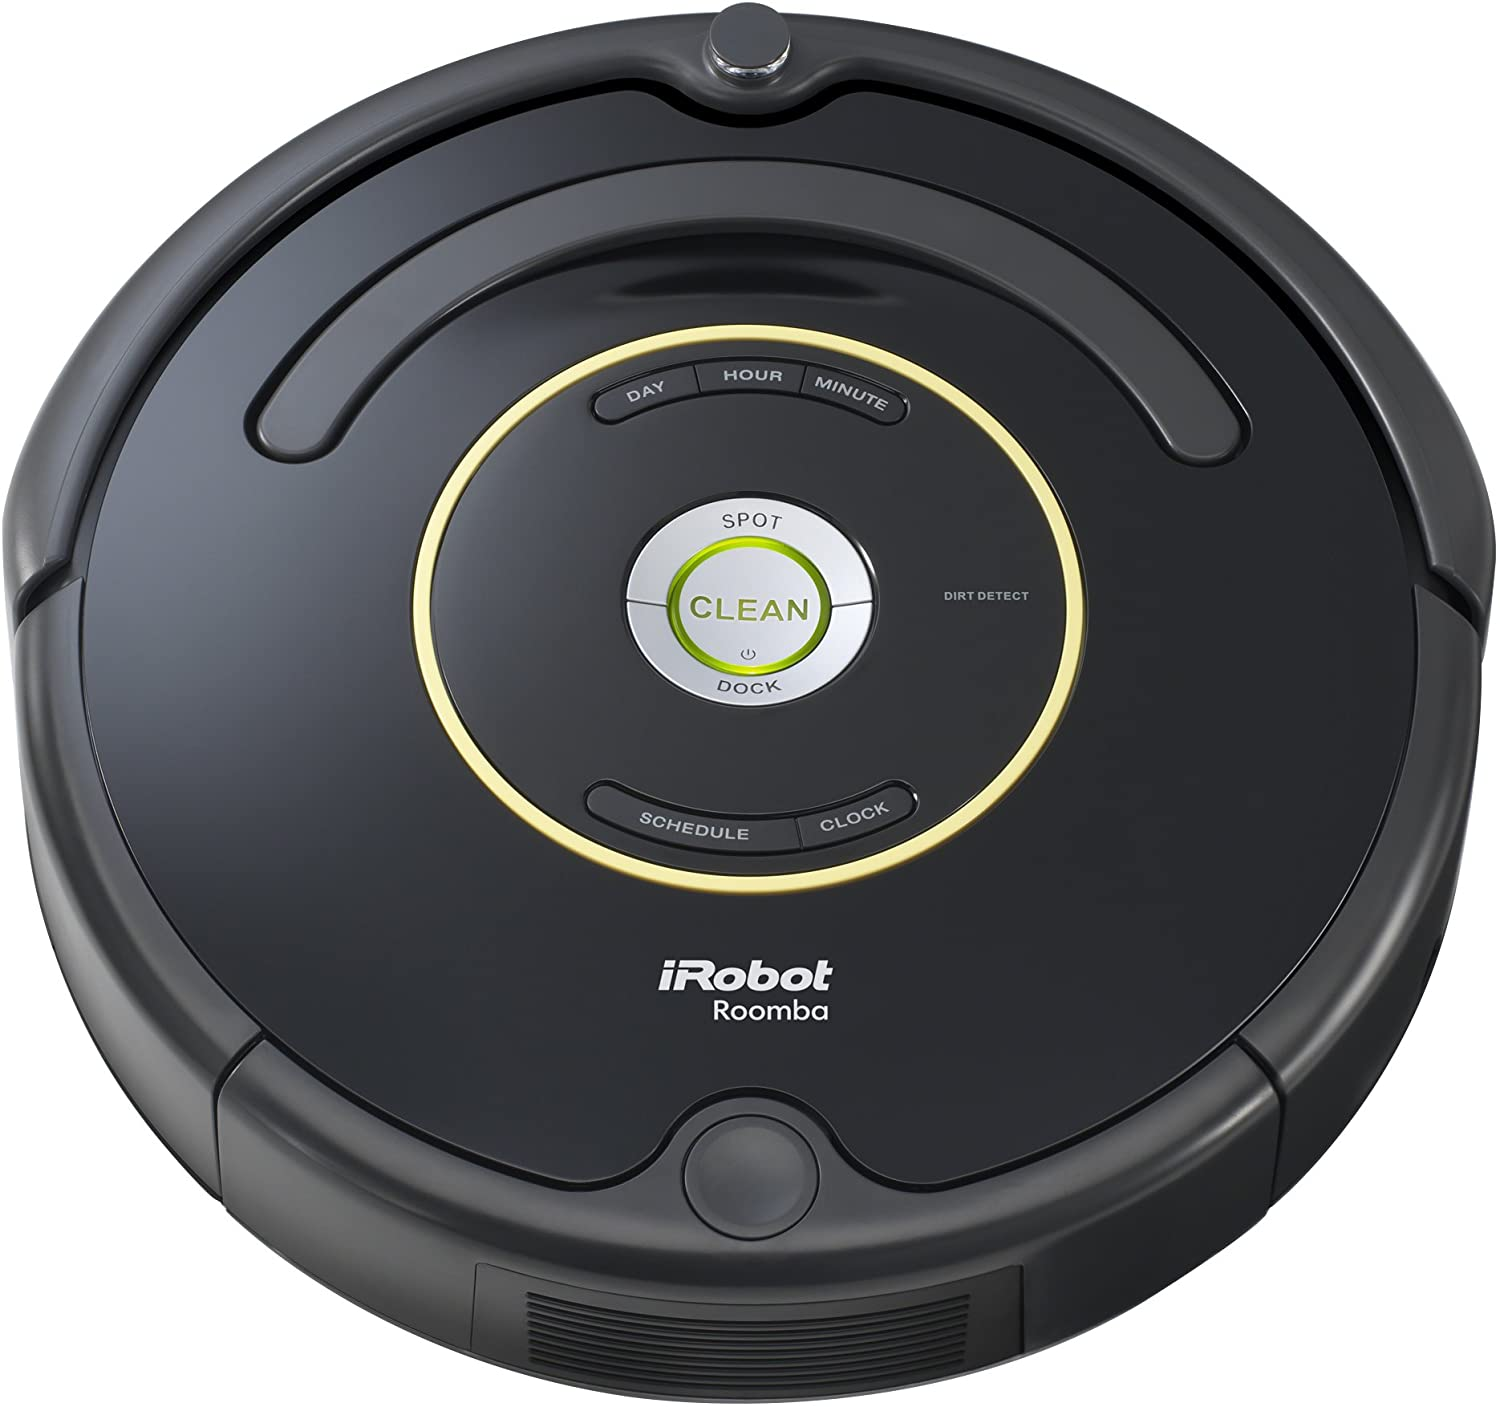 Roomba 650 the Black Friday